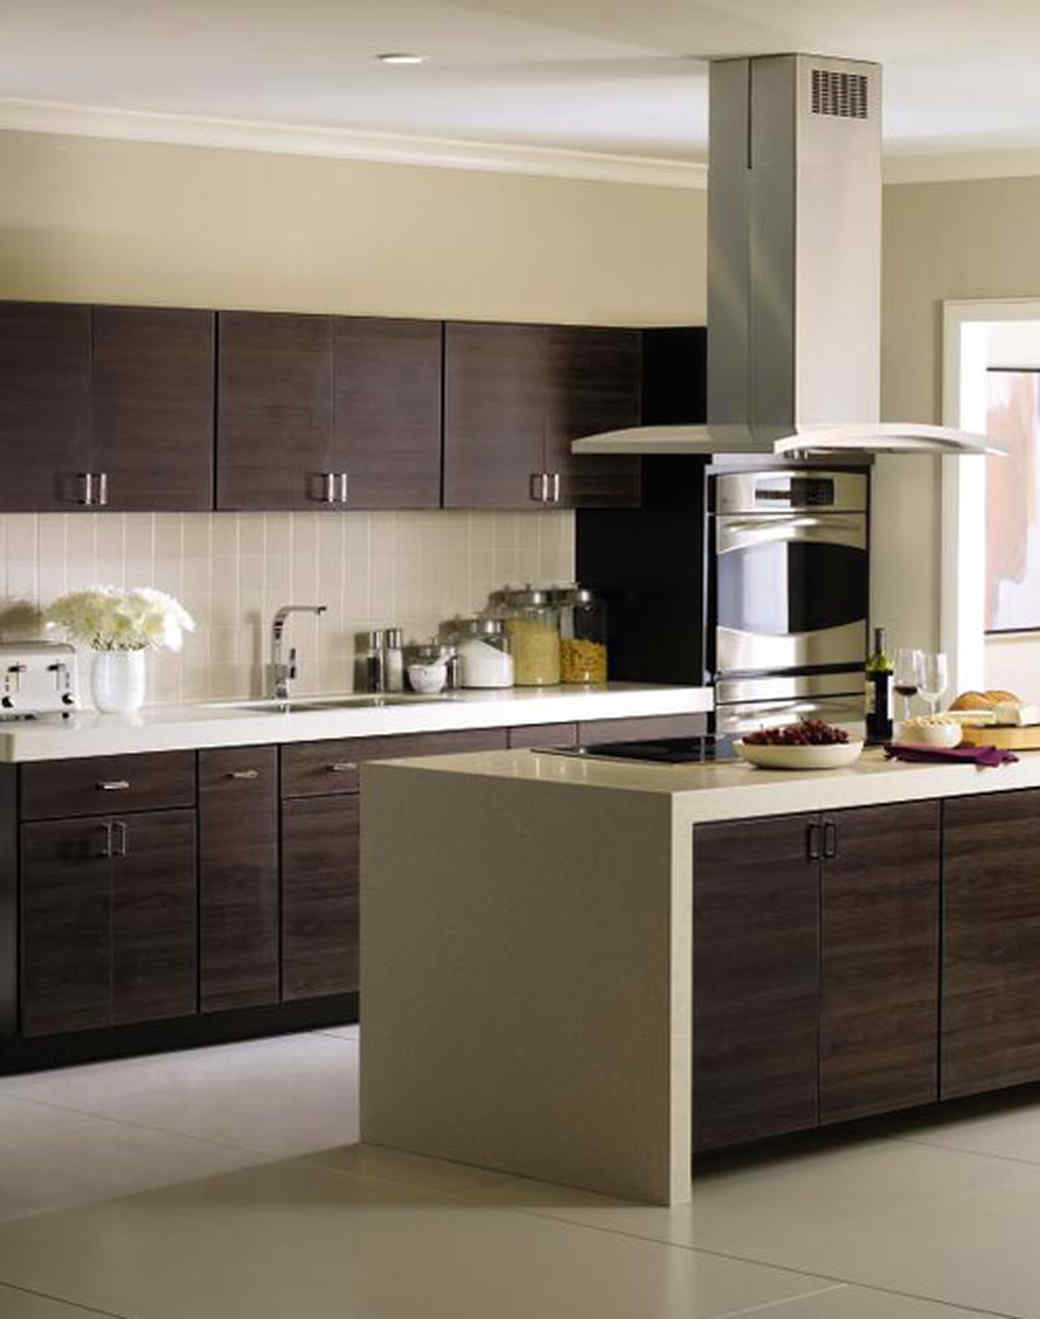 Martha Living Kitchen Designs From The Home Depot